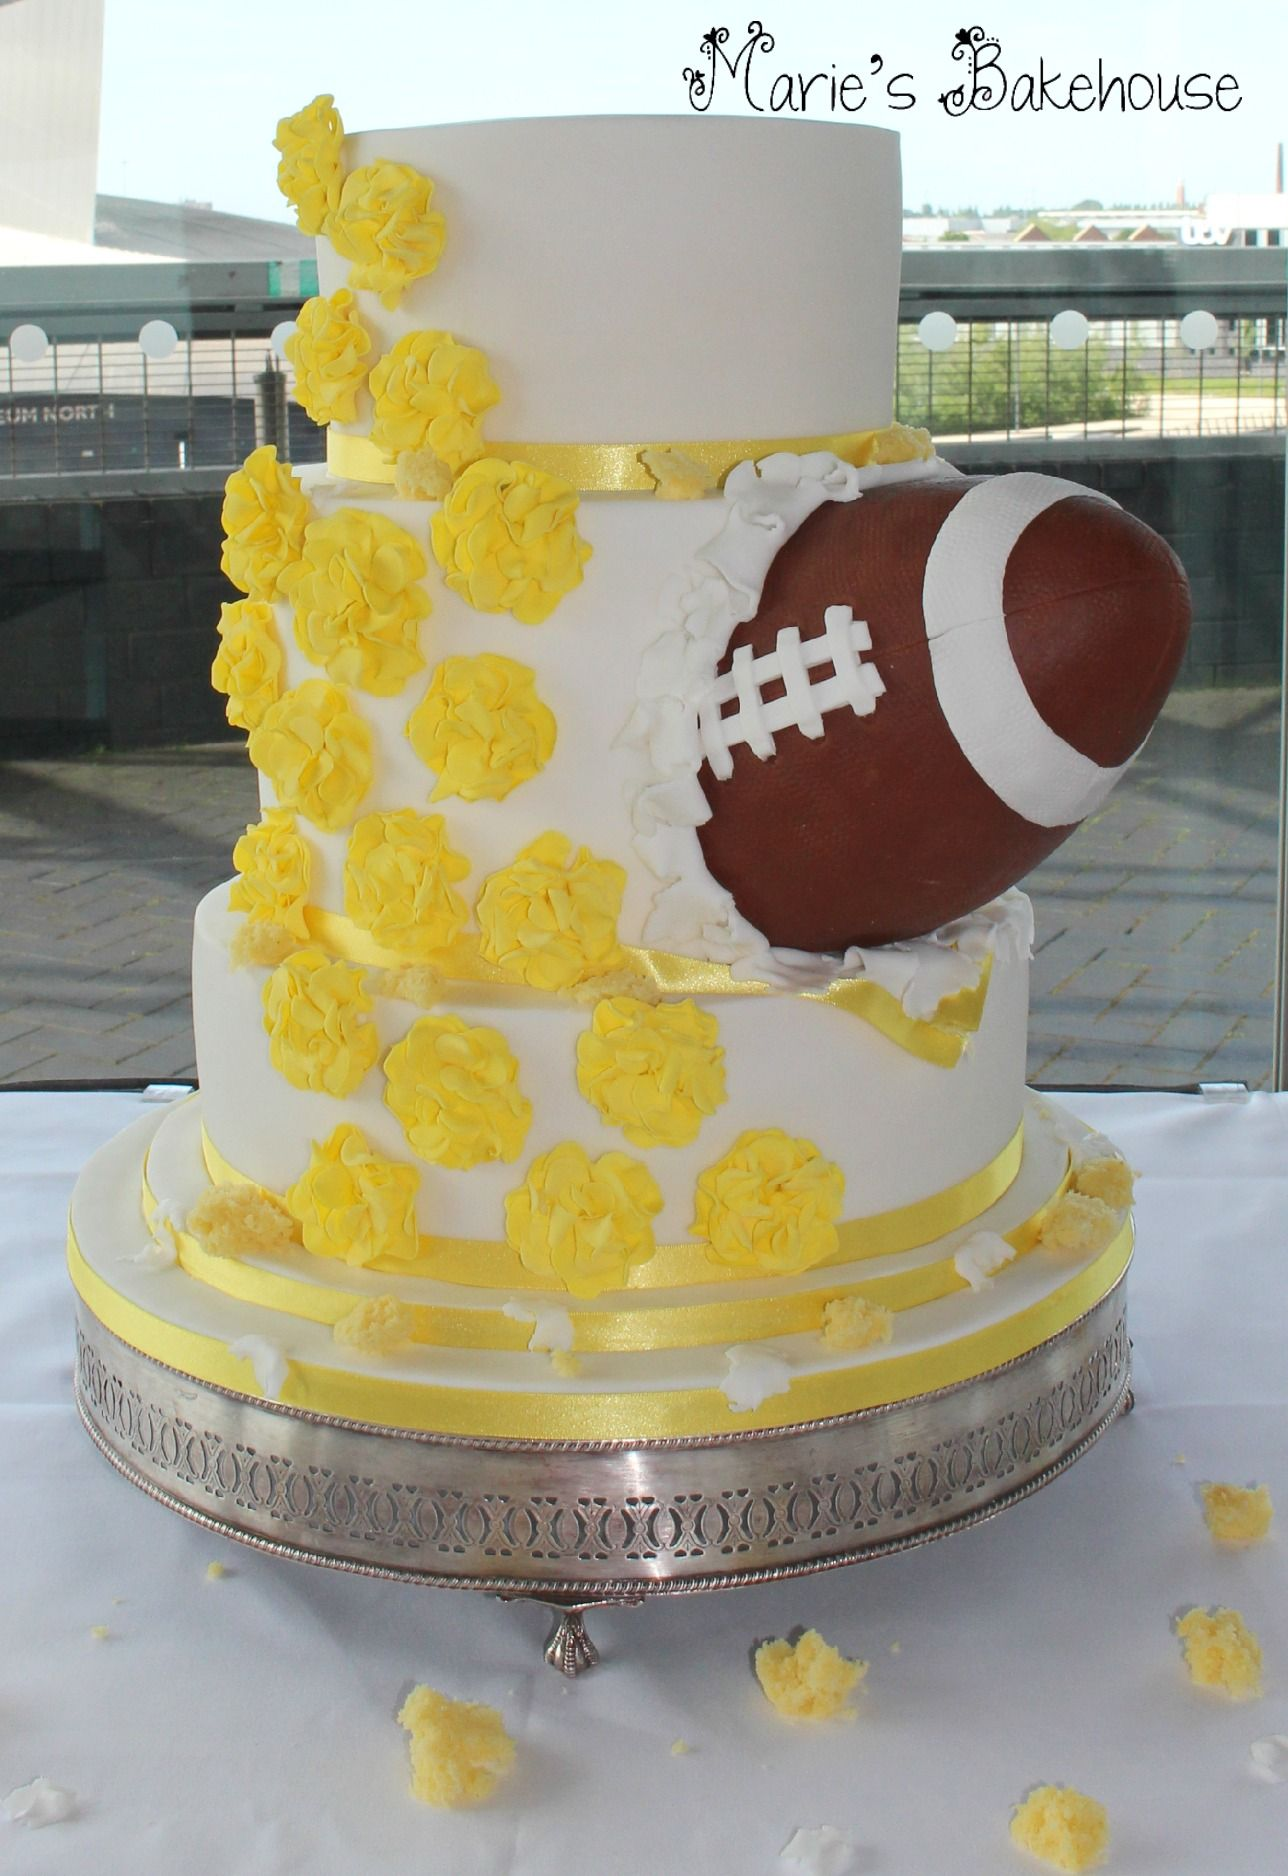 American football wedding cake from maries bakehouse www american football wedding cake from maries bakehouse mariesbakehouse junglespirit Images